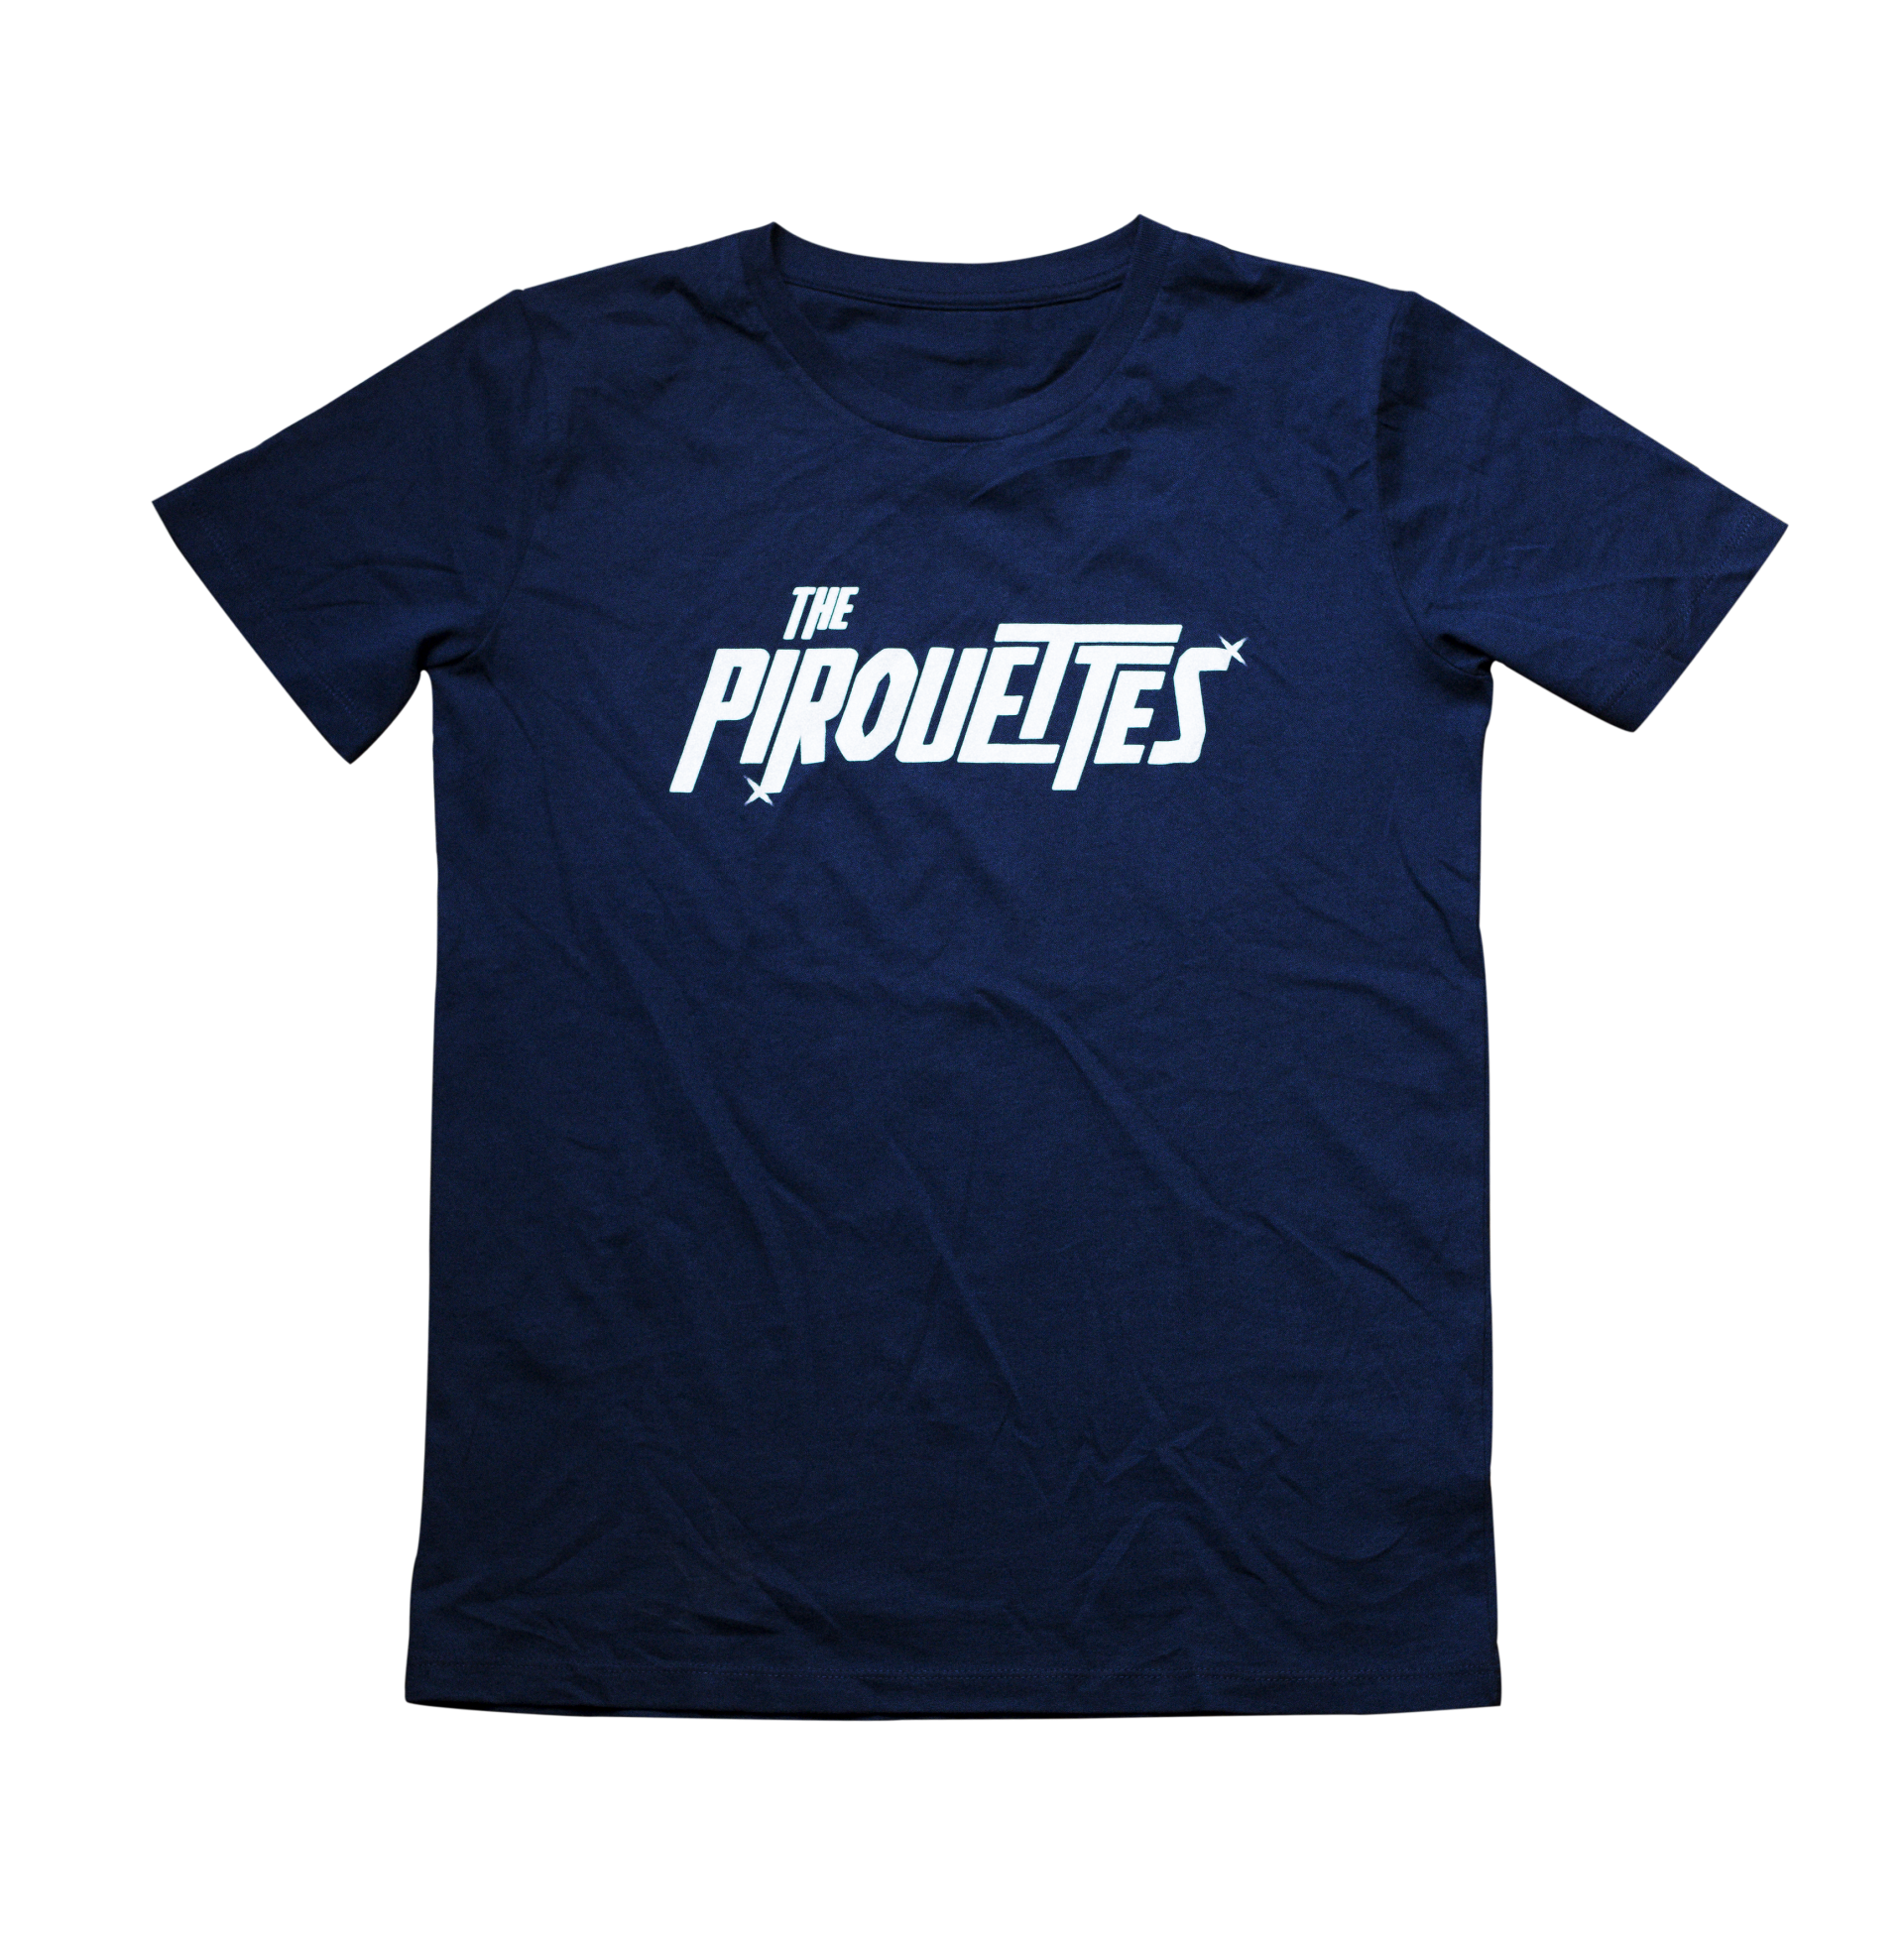 The Pirouettes T-Shirt